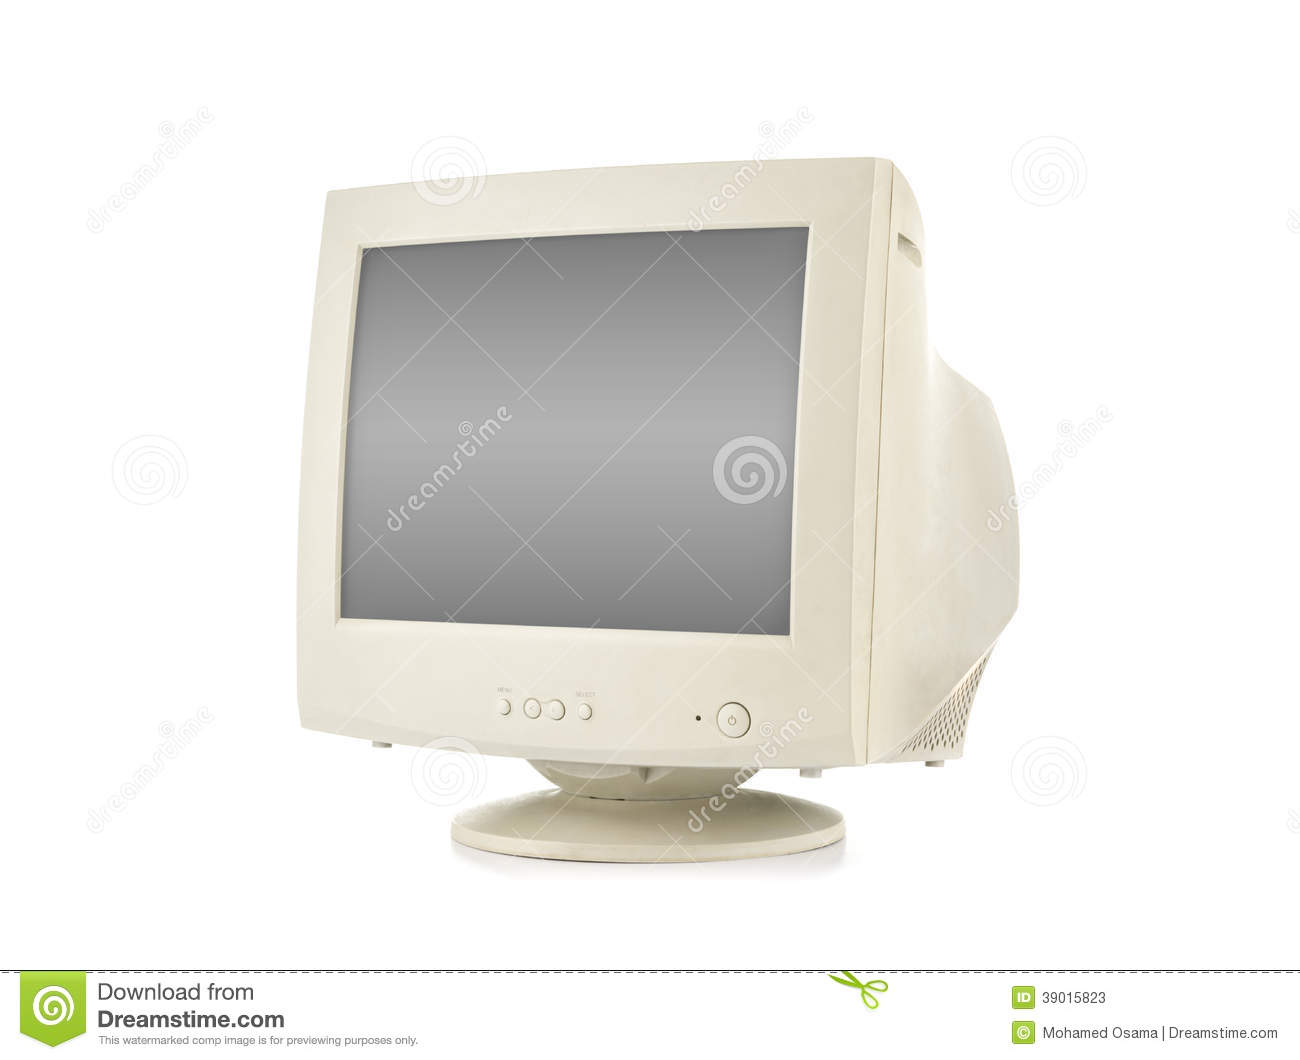 8,8 Old Computer Monitor Photos - Free & Royalty-Free Stock